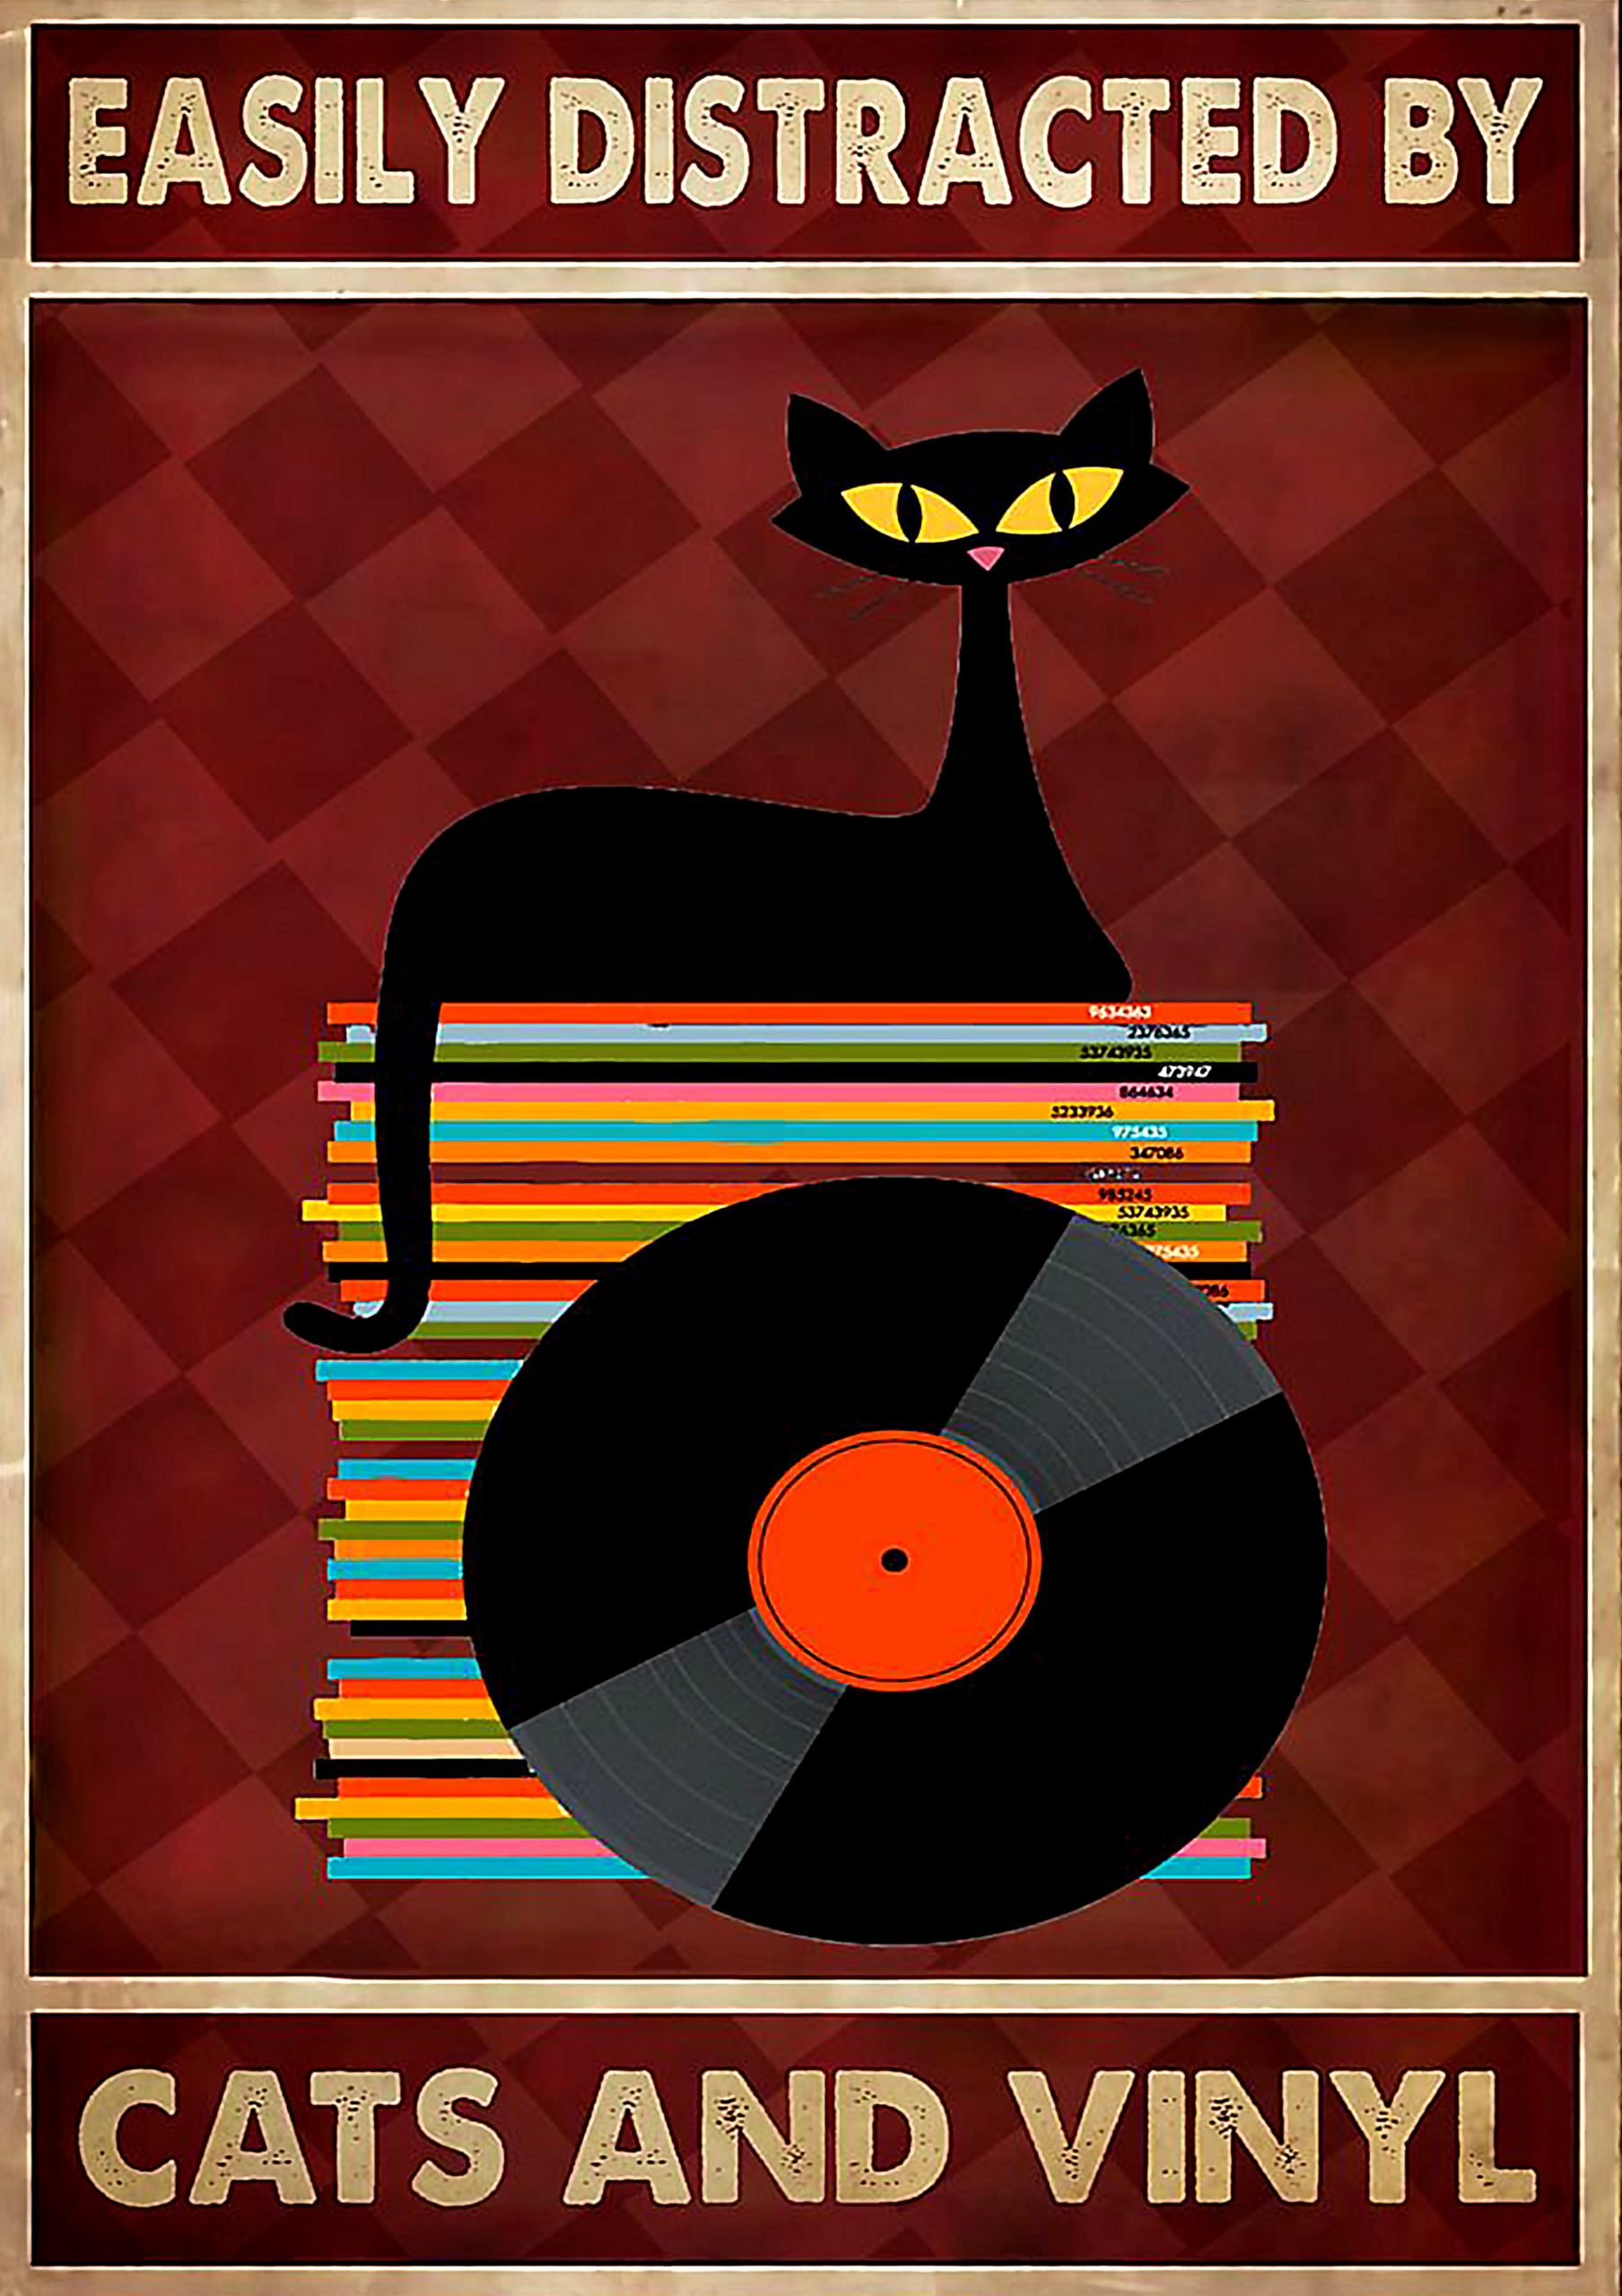 vintage easily distracted by cats and vinyl poster 1